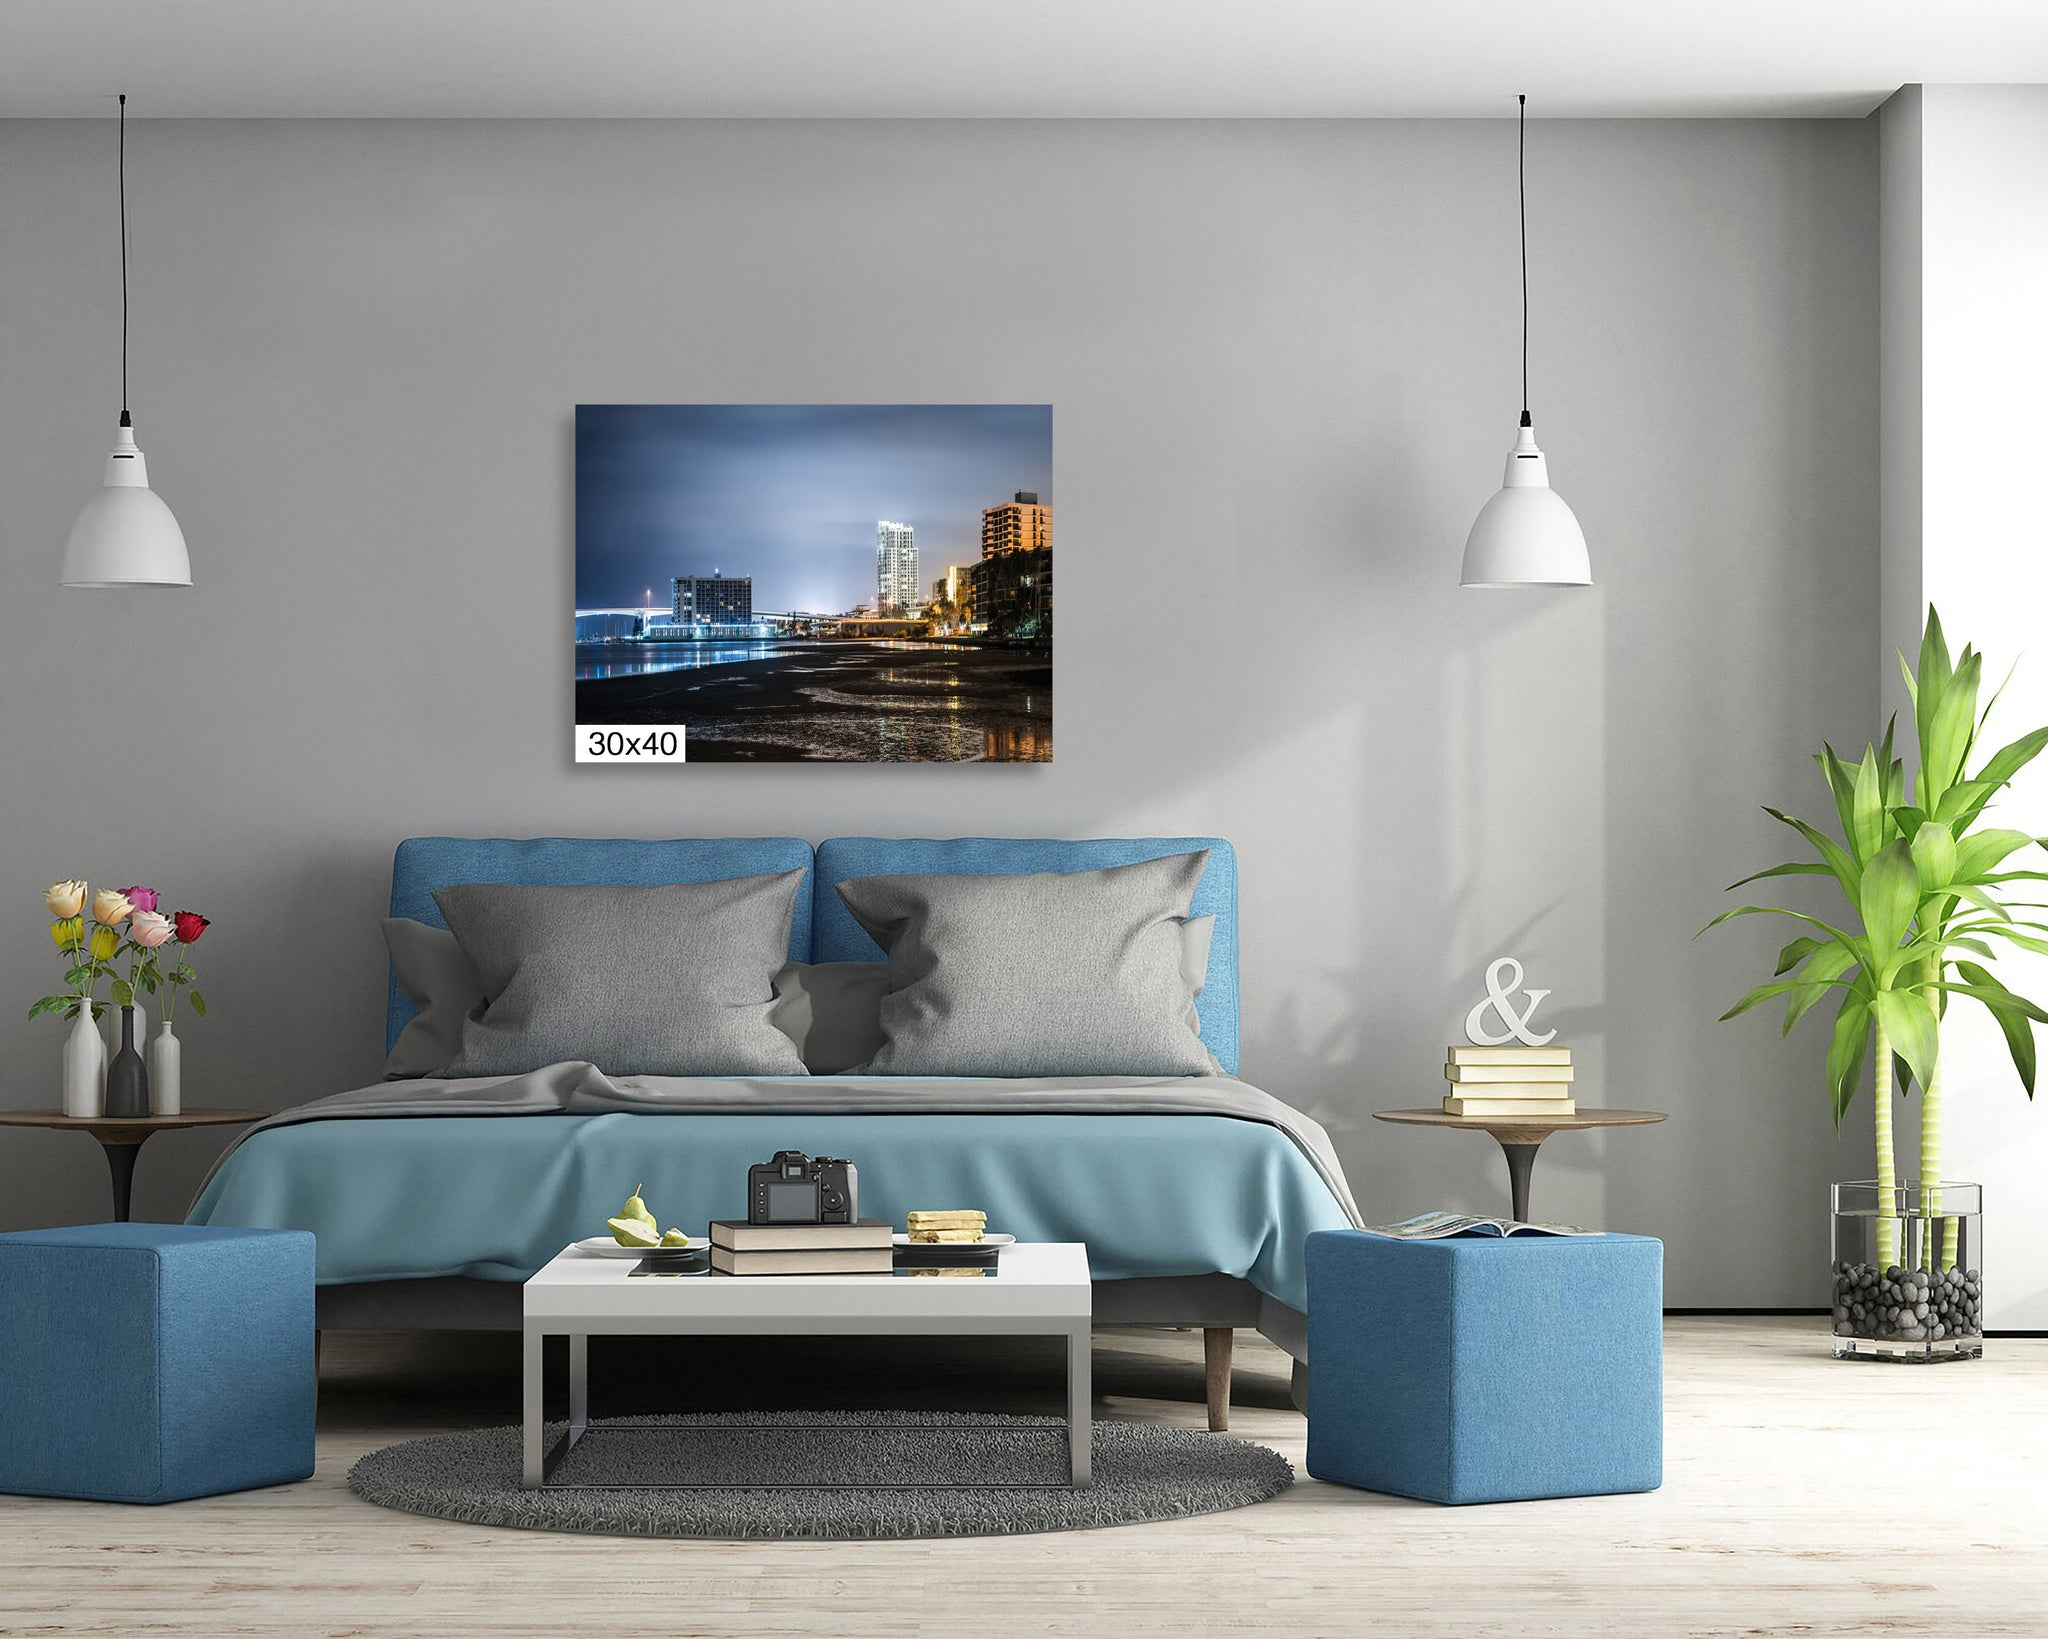 Harbor Oaks Downtown Clearwater Memorial Bridge Florida Canvas Print Metal Art Cityscape Landmark Bedroom Livingroom wall art decor